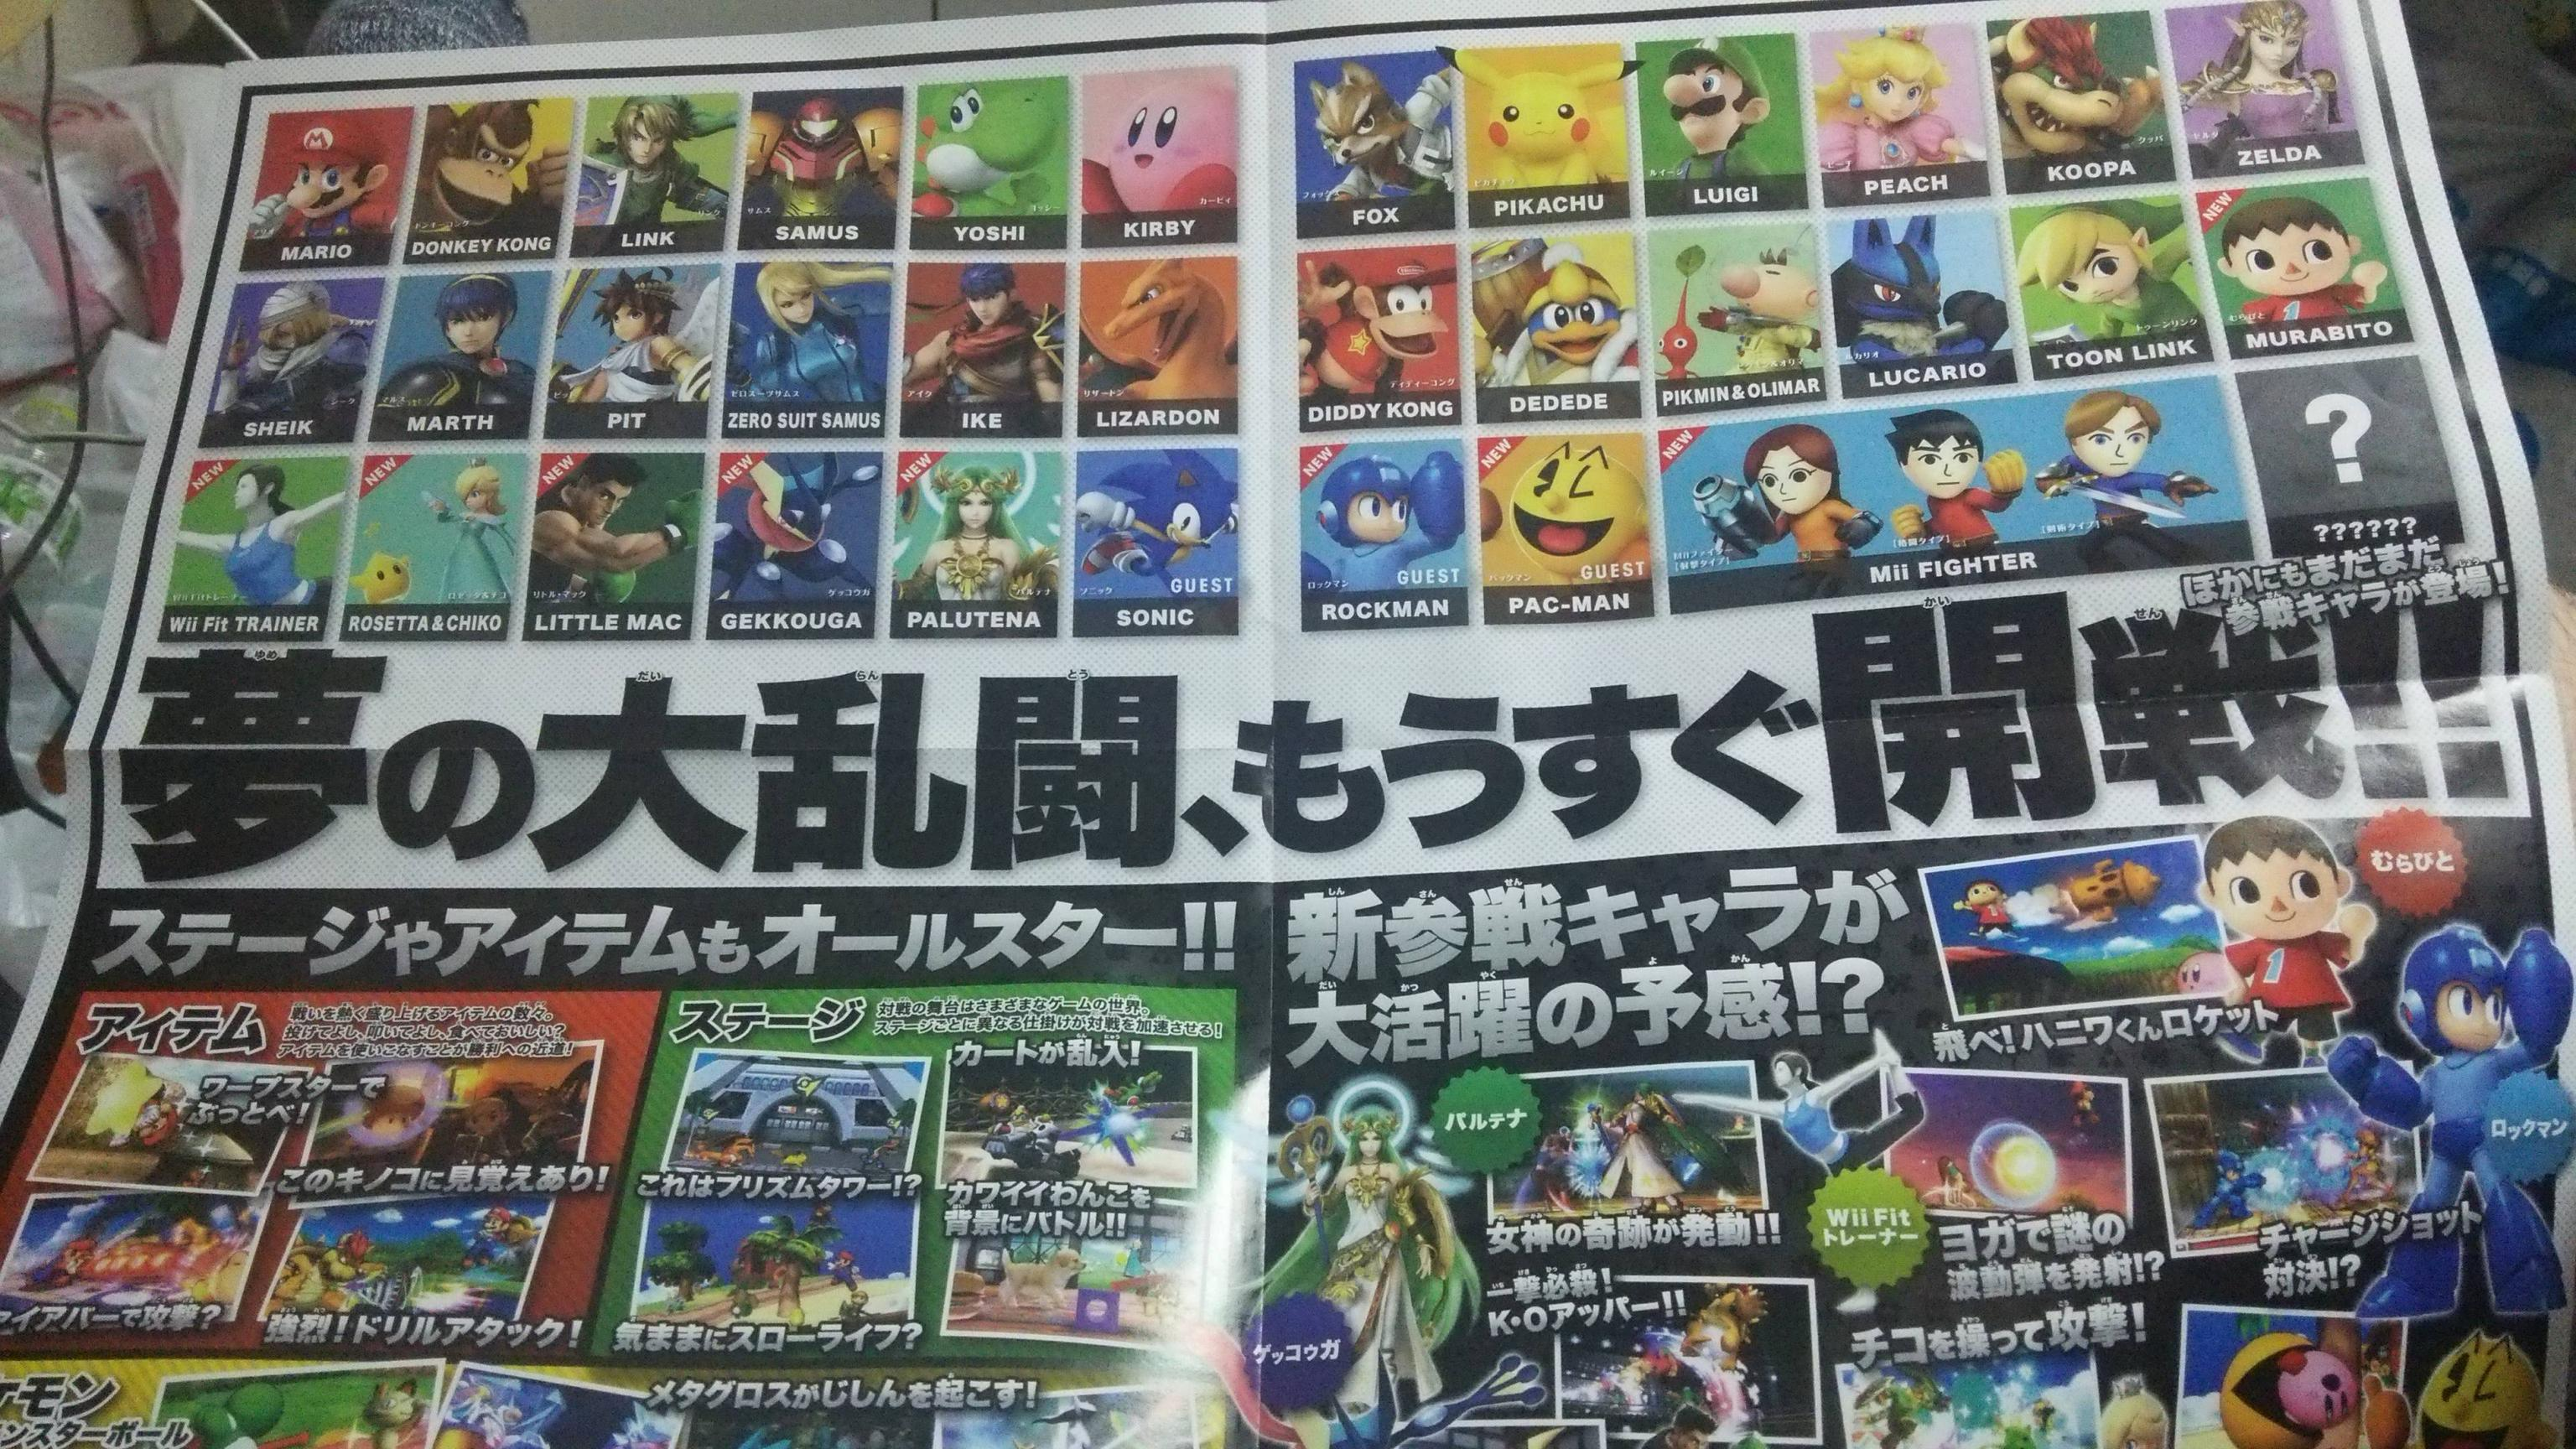 Nintendo Teasing Secret Smash Bros For Wii U3DS